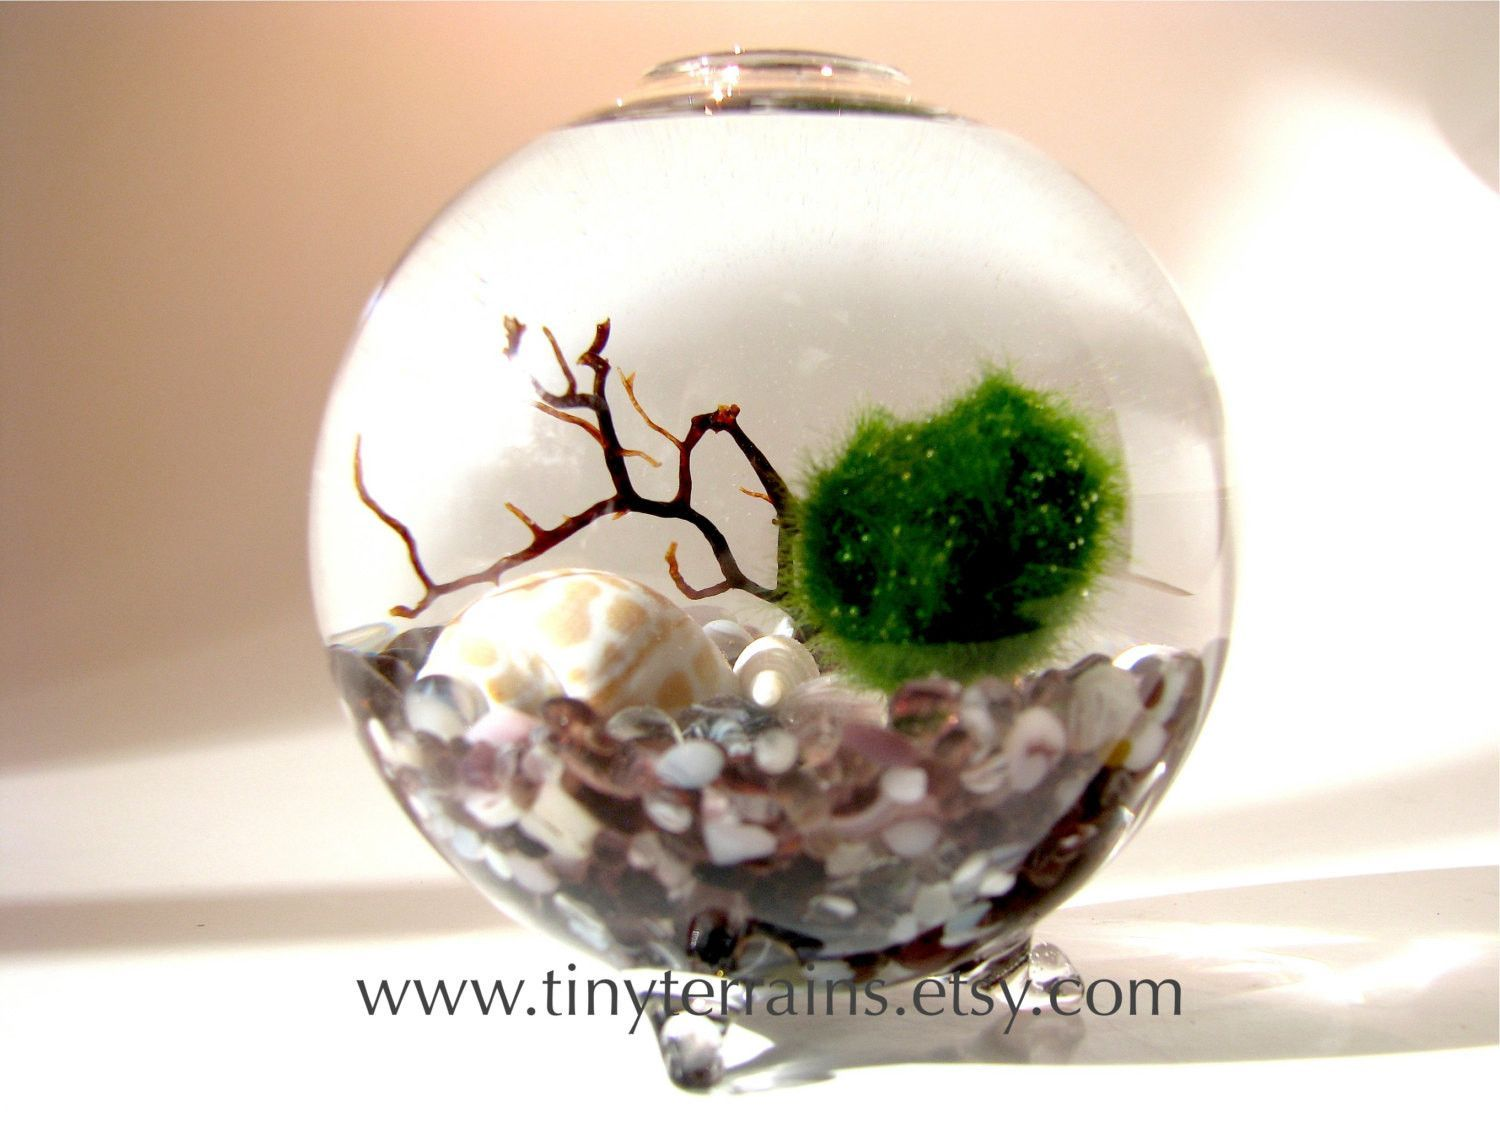 Marimo Moss Ball Globe Terrarium Free 2nd Marimo Ball Several